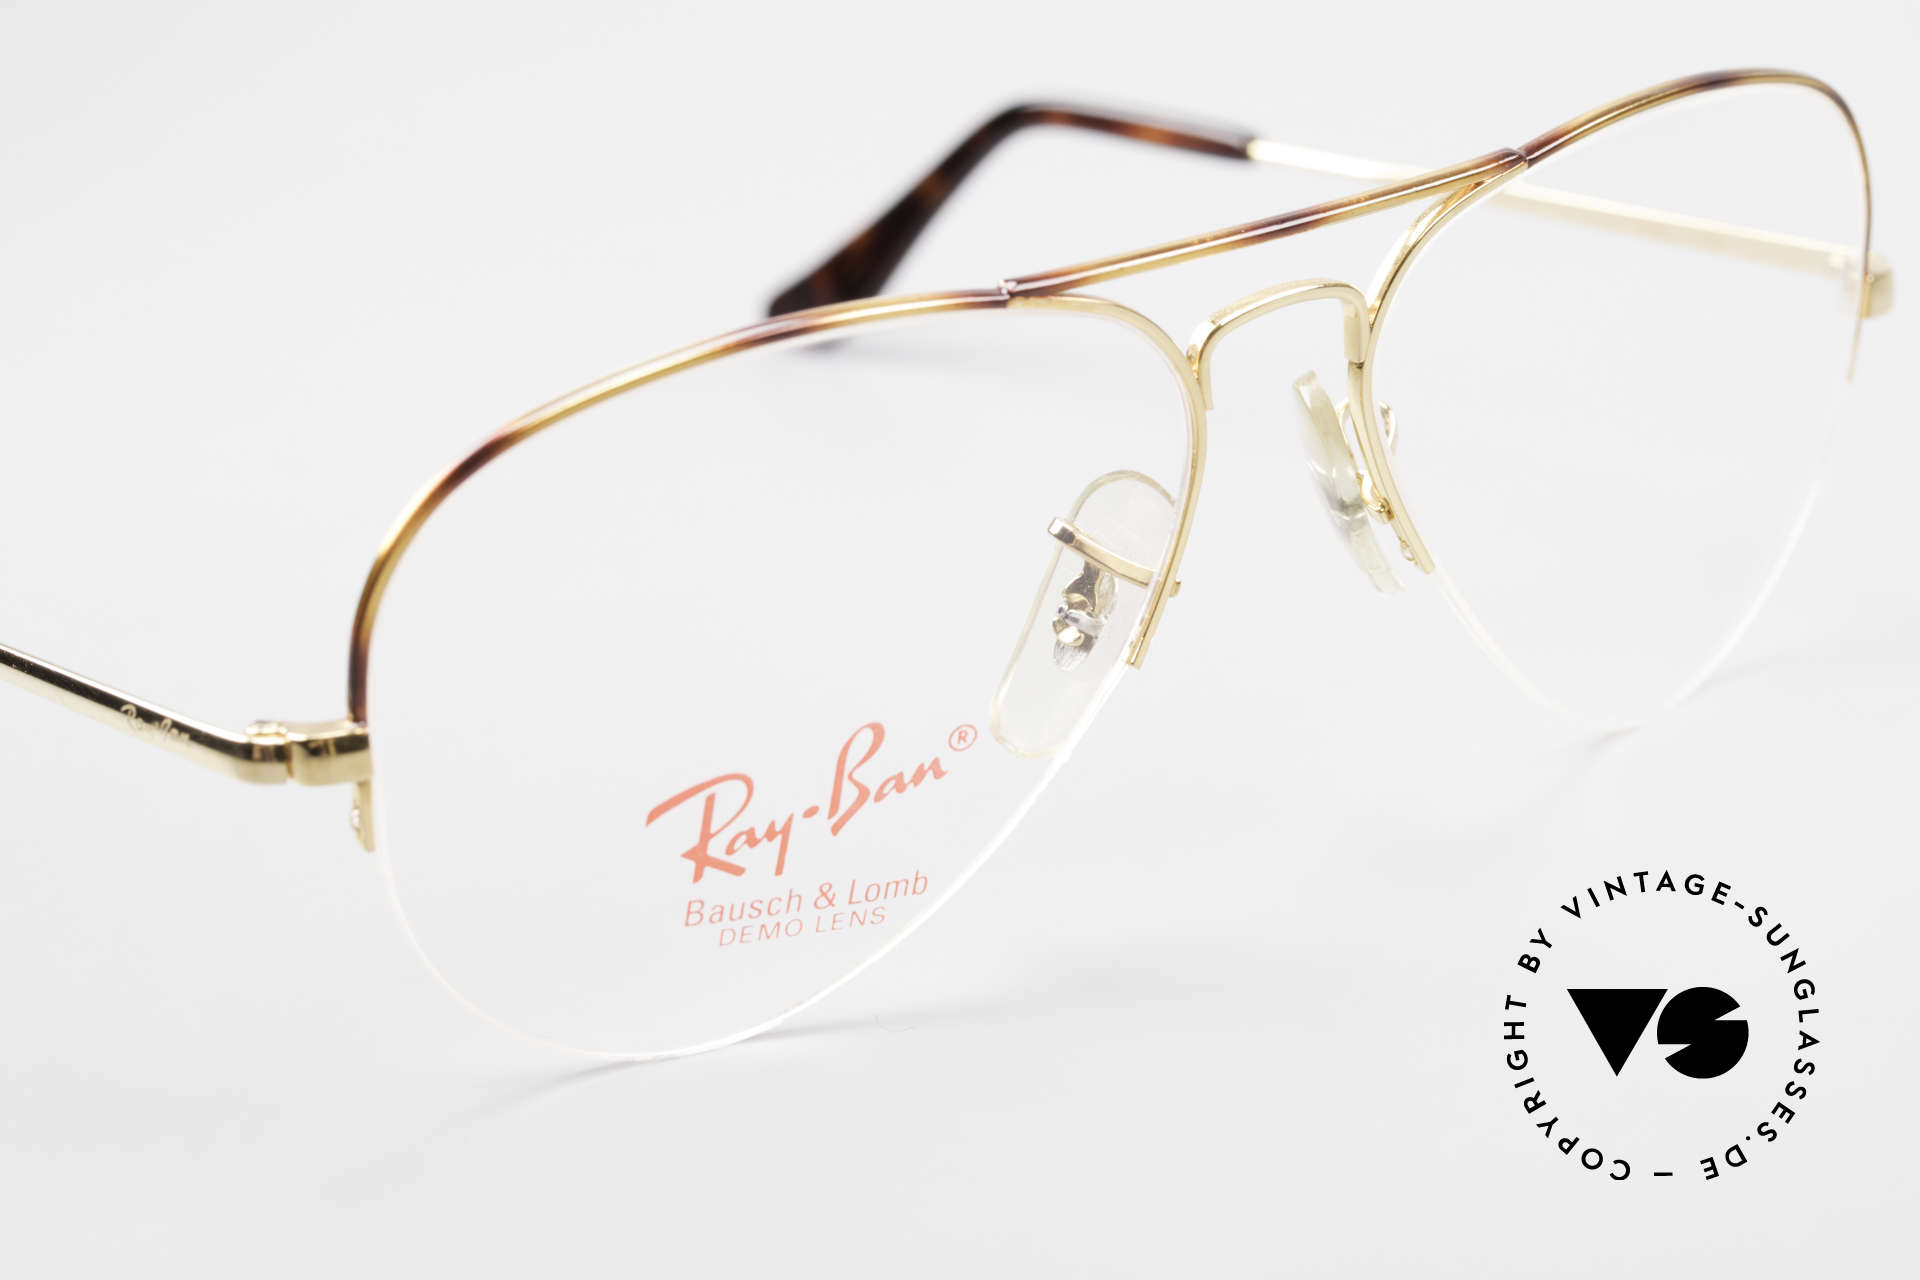 Ray Ban Aviator Half Rimless Frame Tortuga, limited Tortuga version (gold-tortoise finish), Made for Men and Women